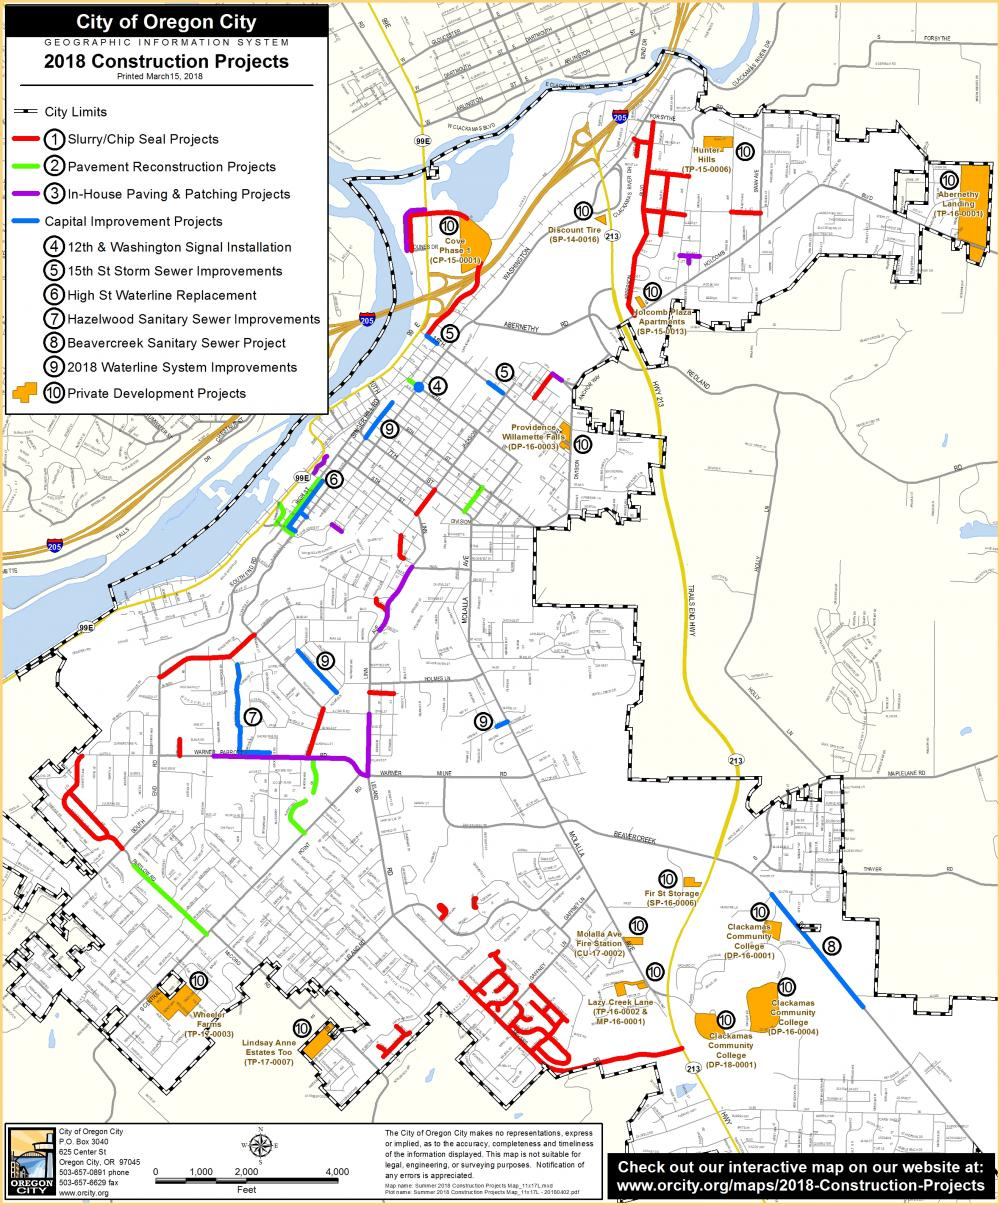 Capital Of Oregon Map.Construction Projects City Of Oregon City